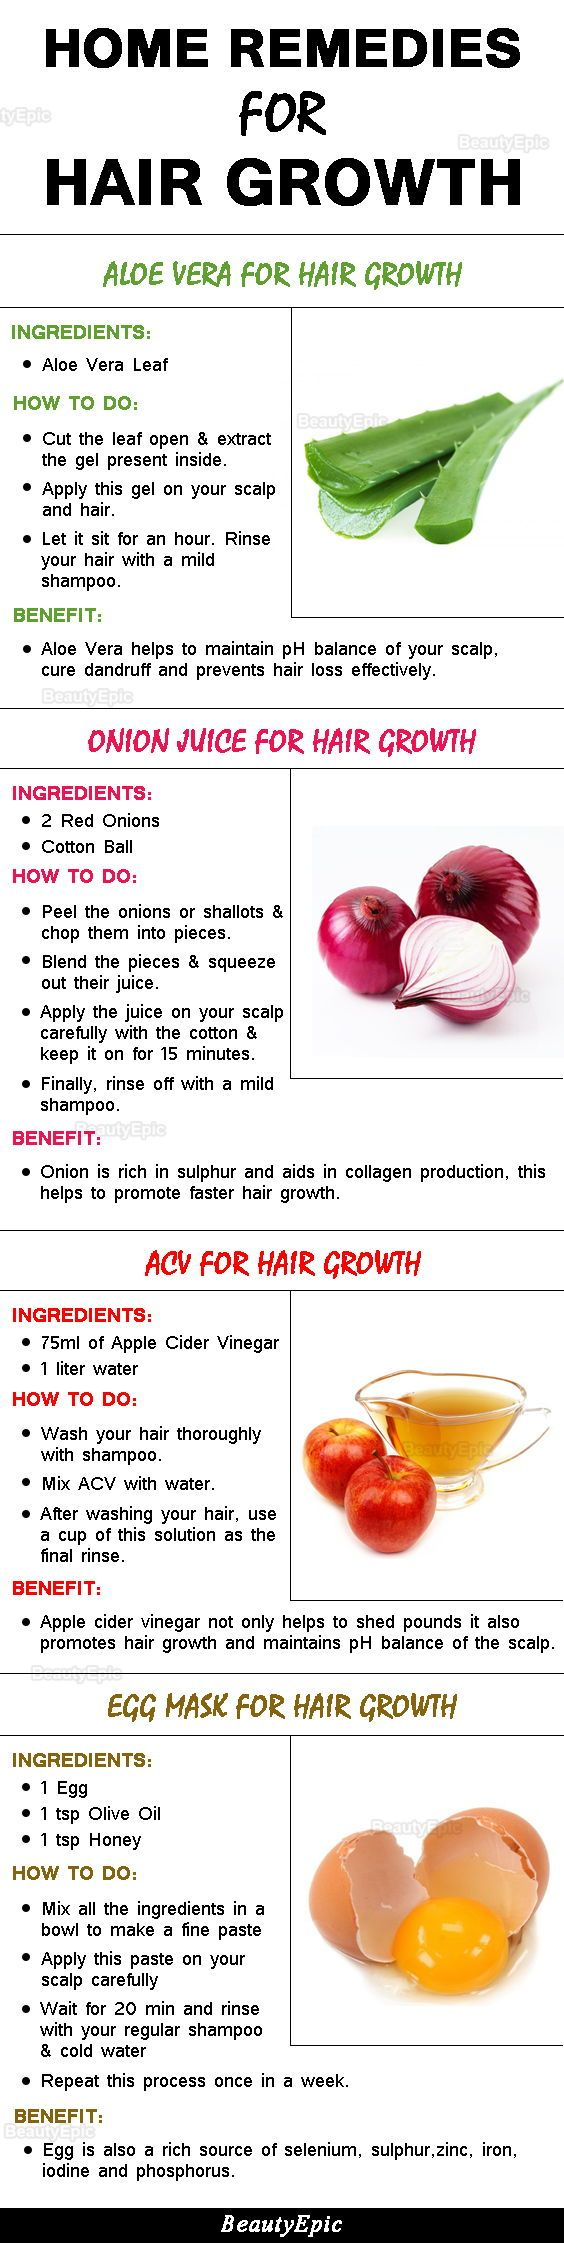 16 Effective Home Remedies for Hair Growth and Thickness